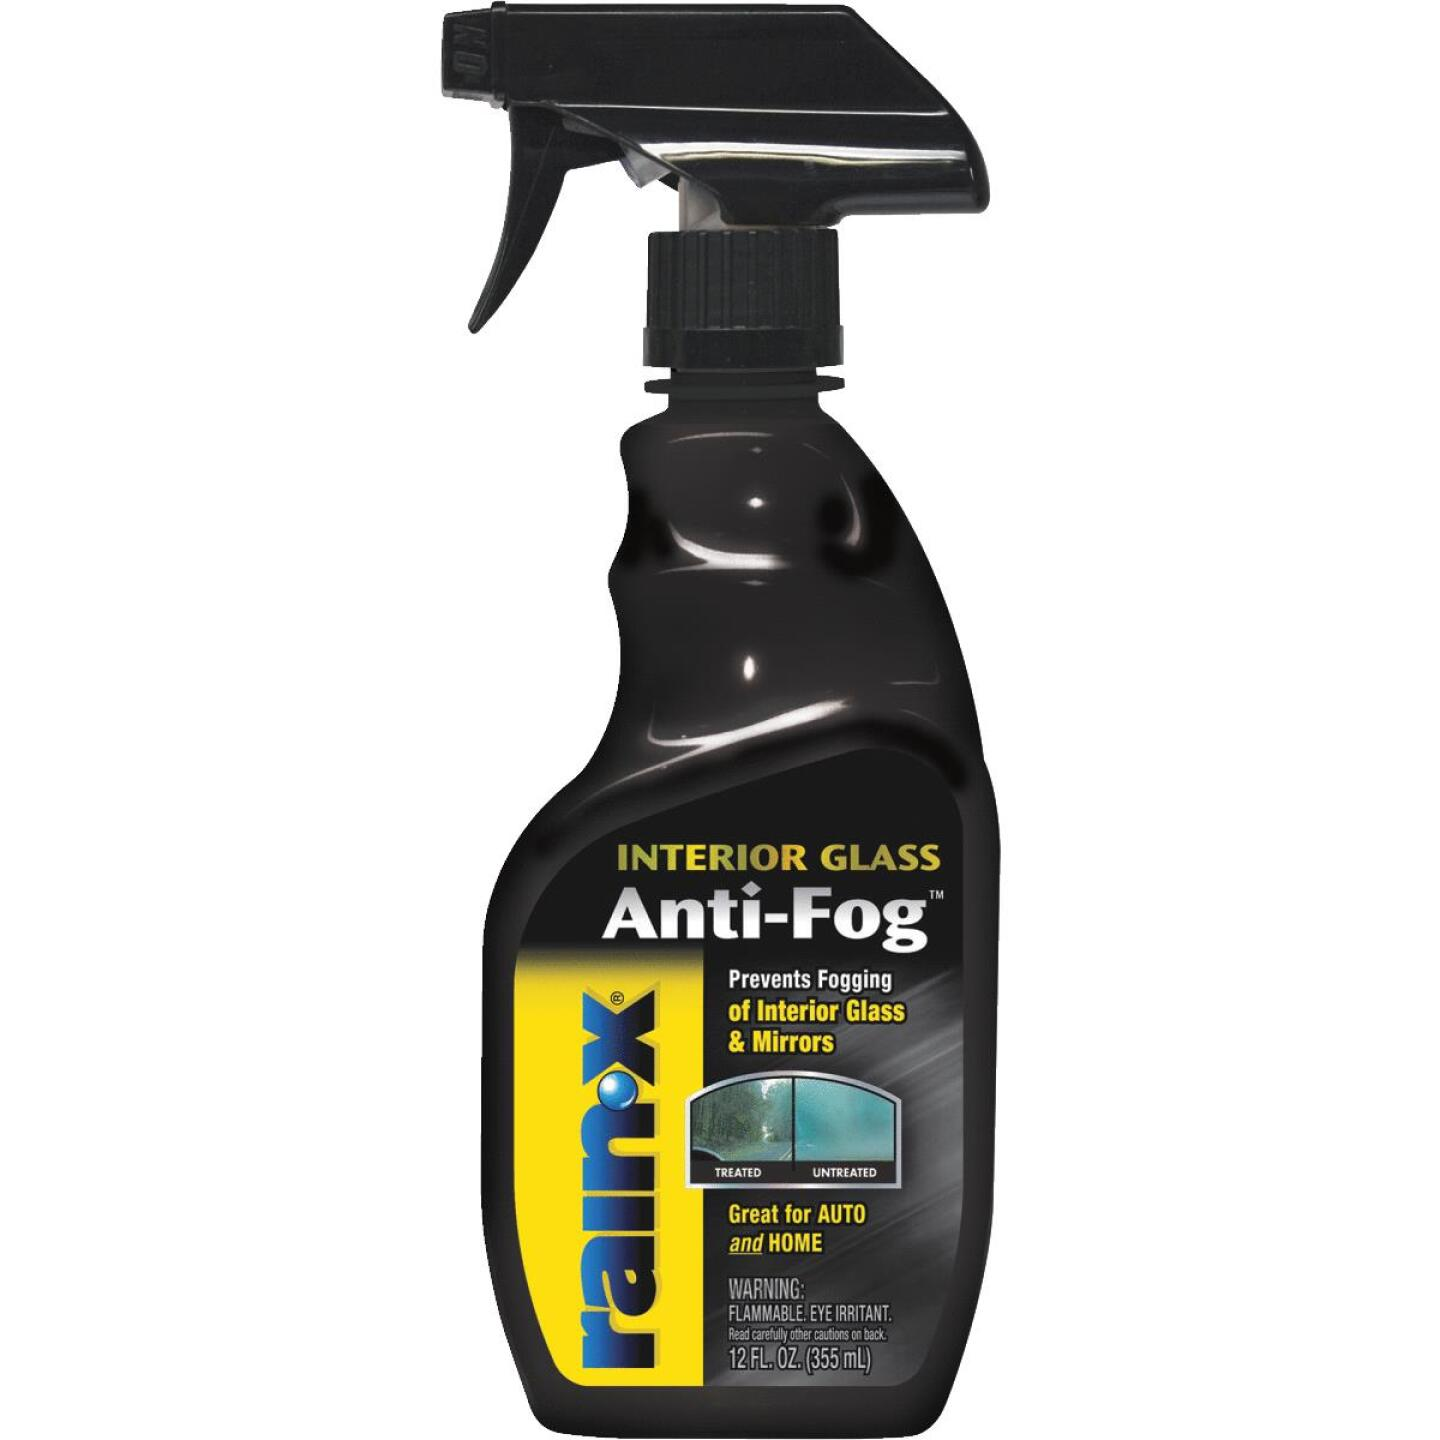 RAIN-X 12 Oz. Trigger Spray Interior Glass Anti-Fog Cleaner Image 1